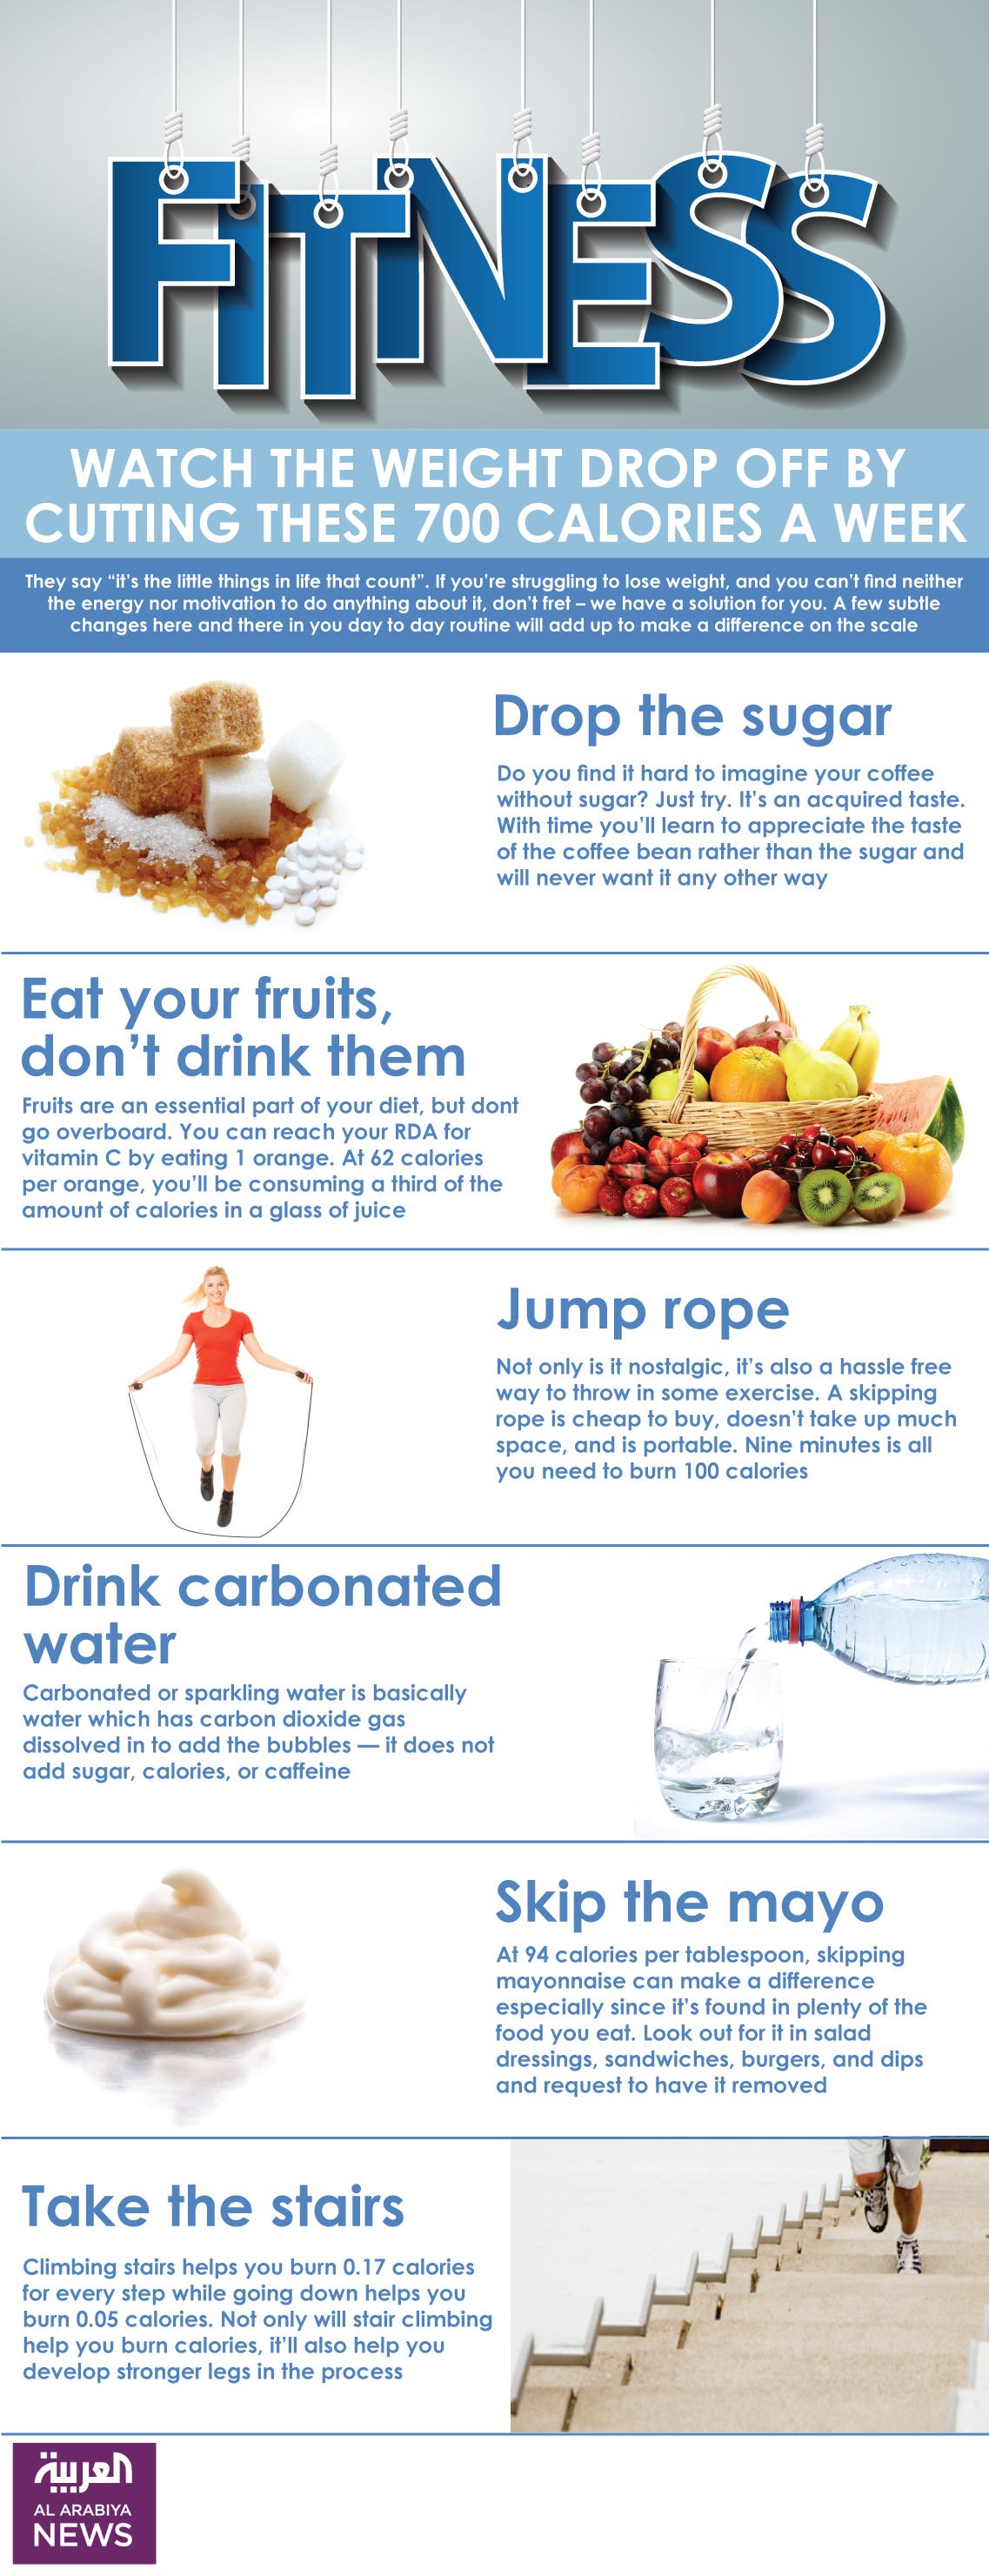 Infographic: Watch the weight drop off by cutting these 700 calories a week